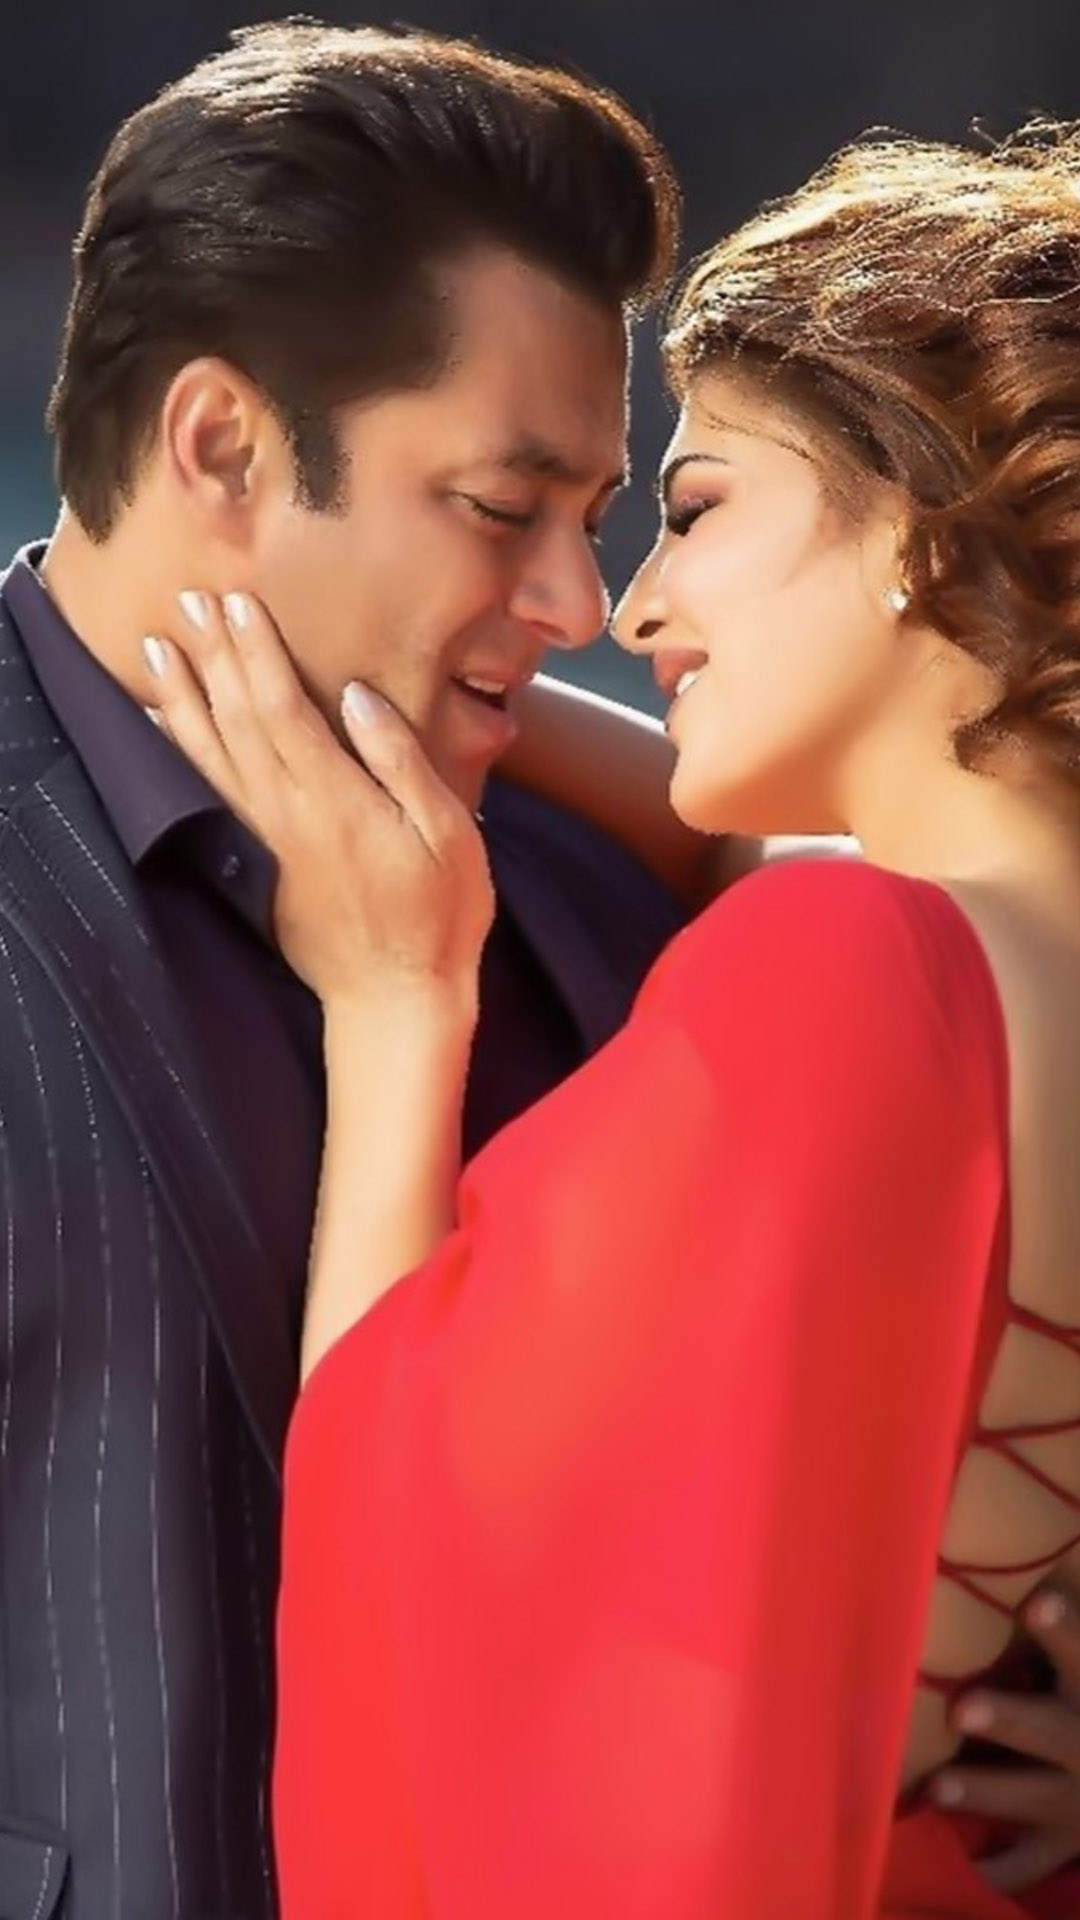 Download Salman Khan Jacqueline Fernandez In Race 3 Free Pure 4k